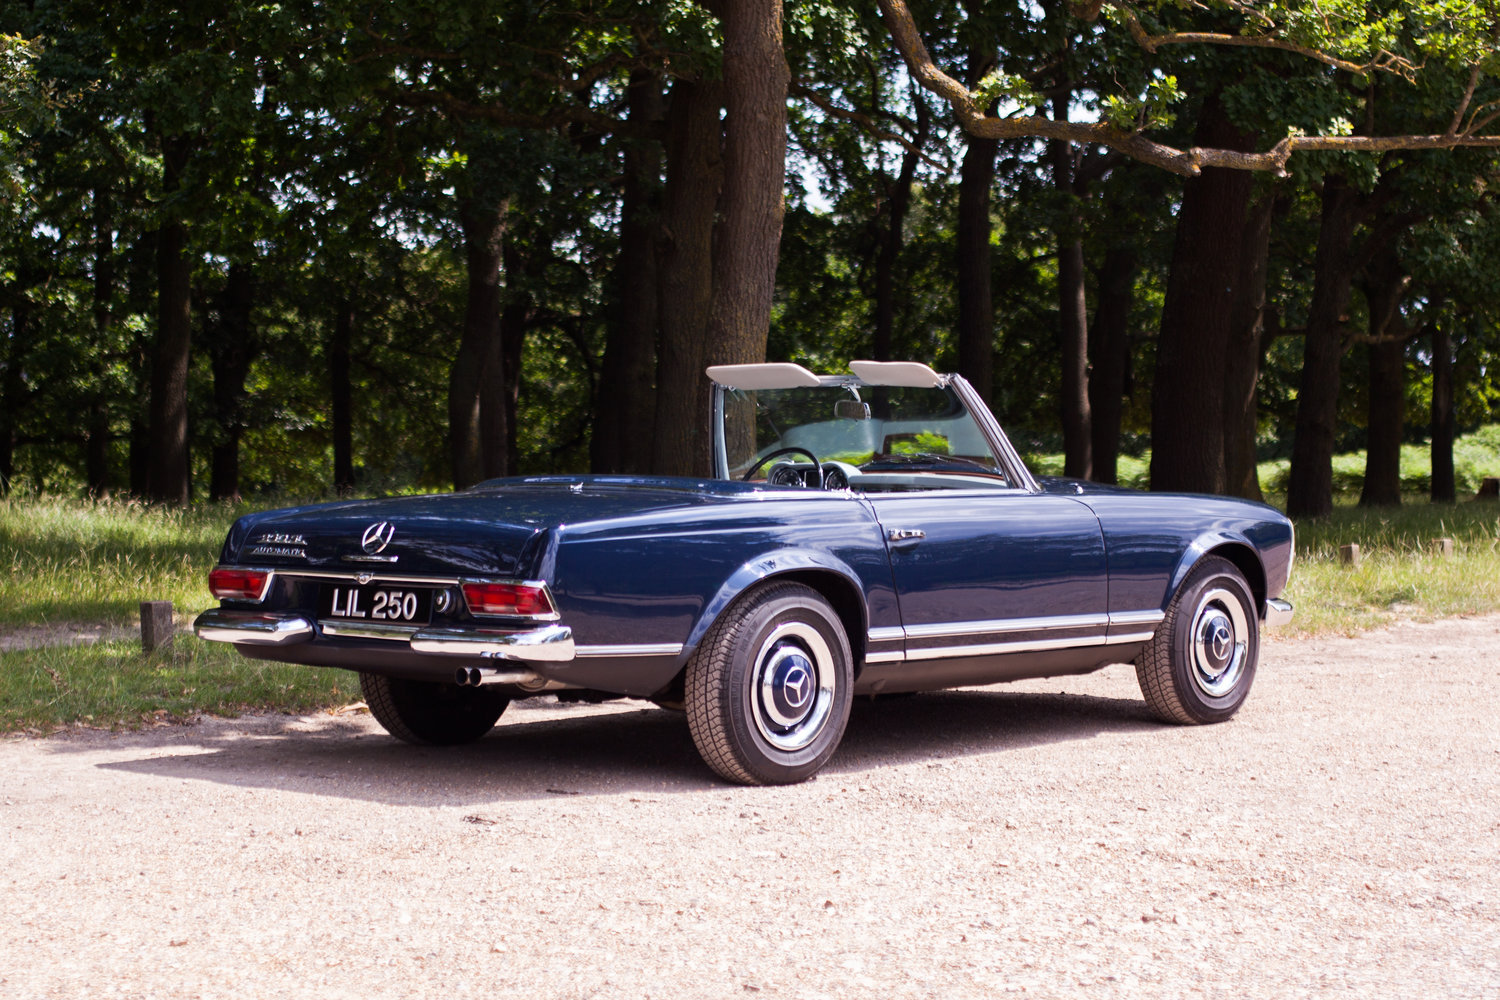 1967 Mercedes-Benz 250SL Pagoda - SOLD, Another Wanted!! For Sale (picture 3 of 6)